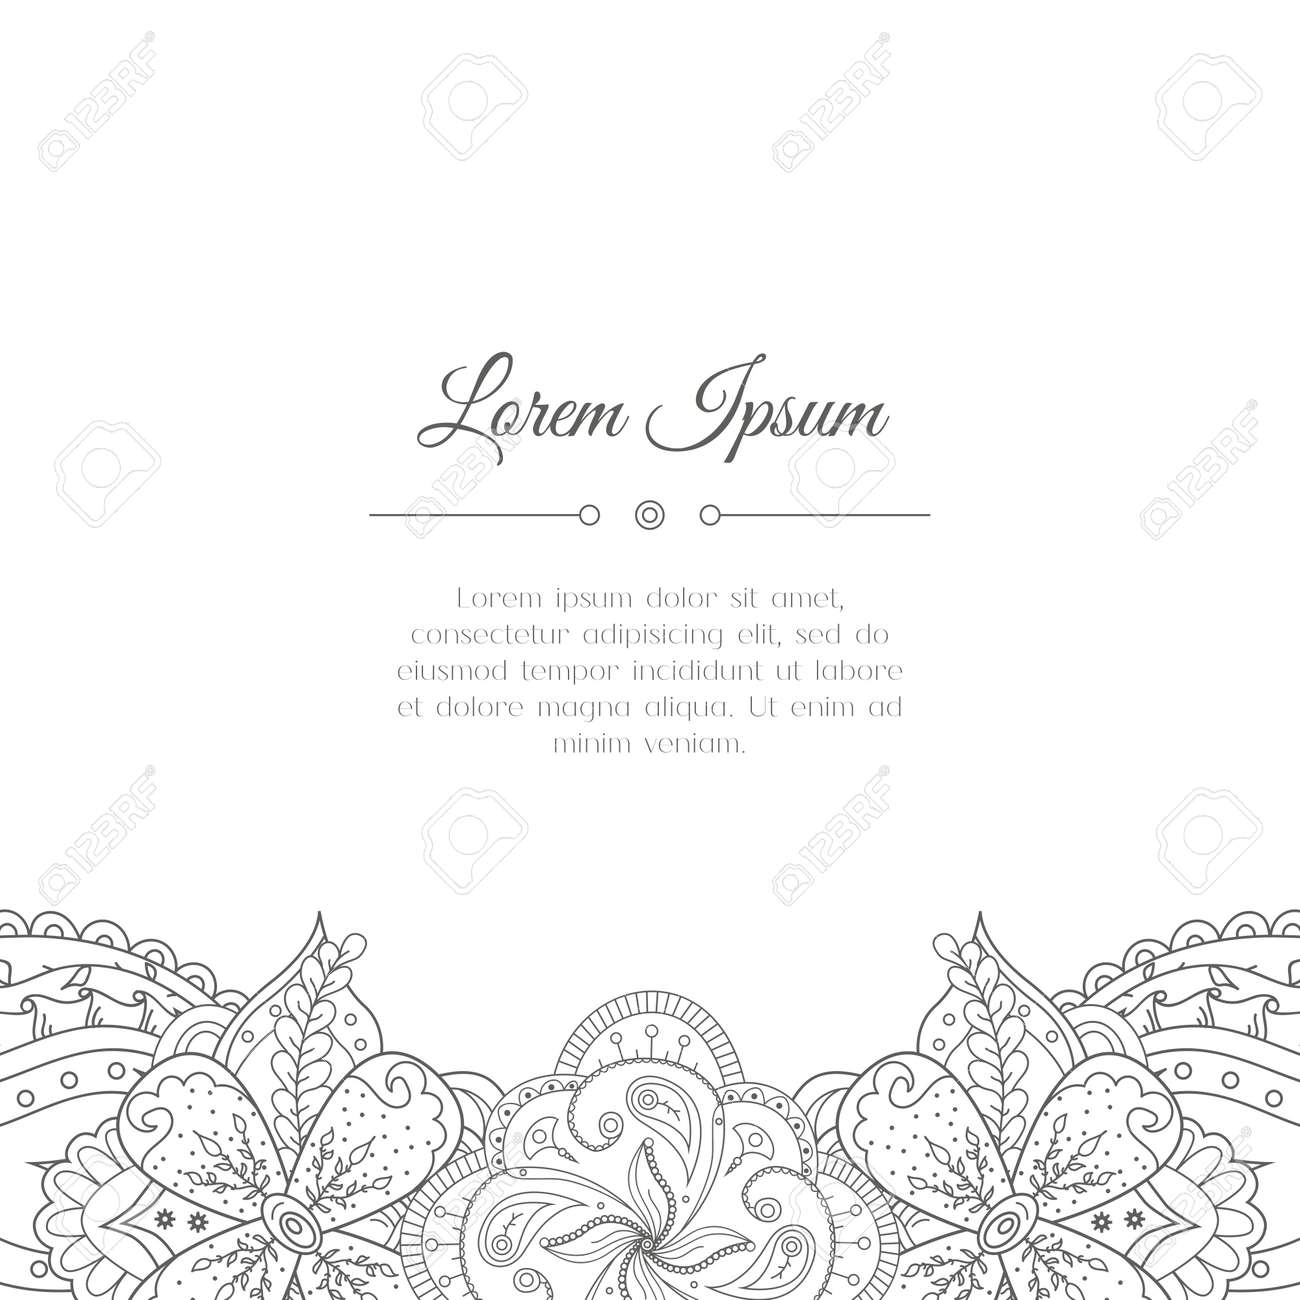 Hand drawn doodle floral border abstract zentangle background vector illustration hand drawn doodle floral border abstract zentangle background mehndi indian east henna design stopboris Images